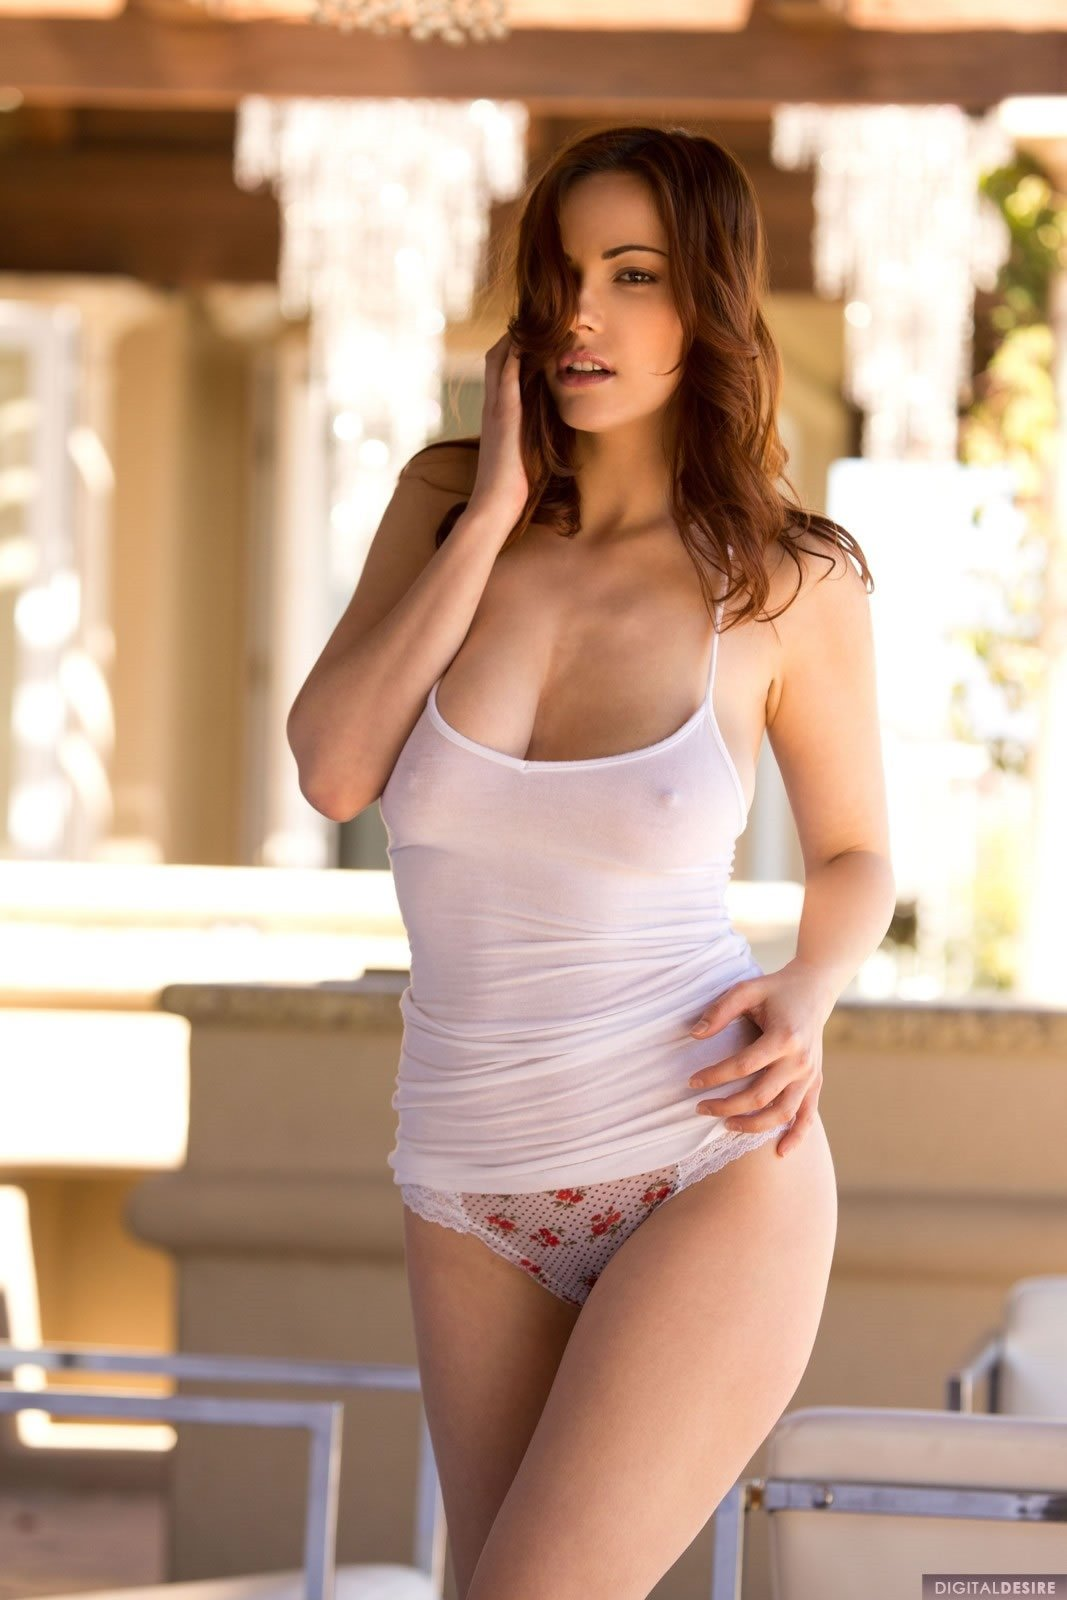 Elizabeth Marxs Perfection - Fine Hotties - Hot Naked ...